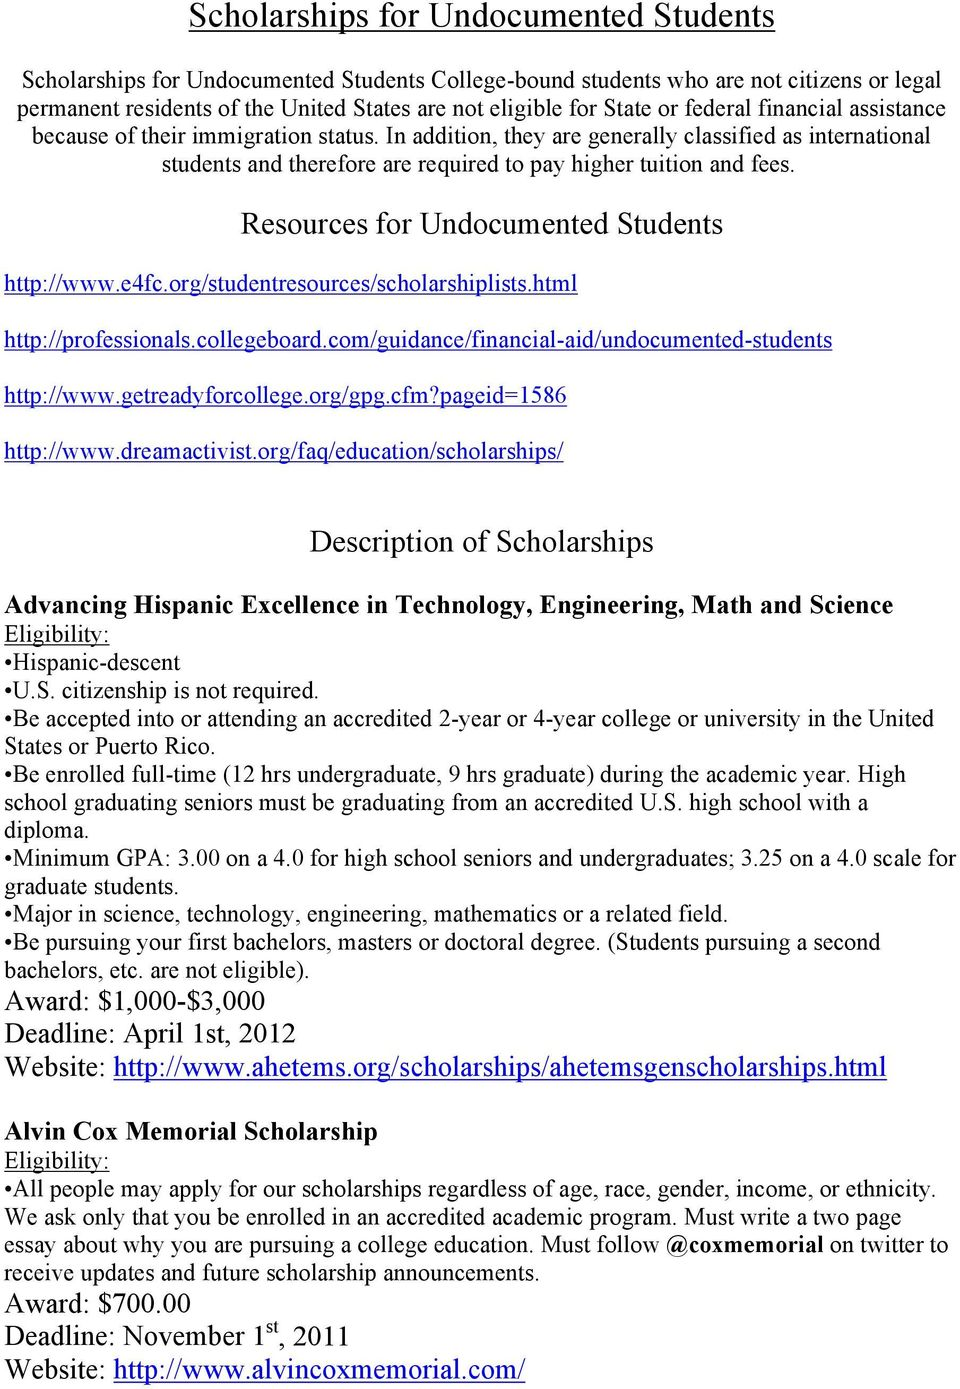 Resources for Undocumented Students http://www.e4fc.org/studentresources/scholarshiplists.html http://professionals.collegeboard.com/guidance/financial-aid/undocumented-students http://www.